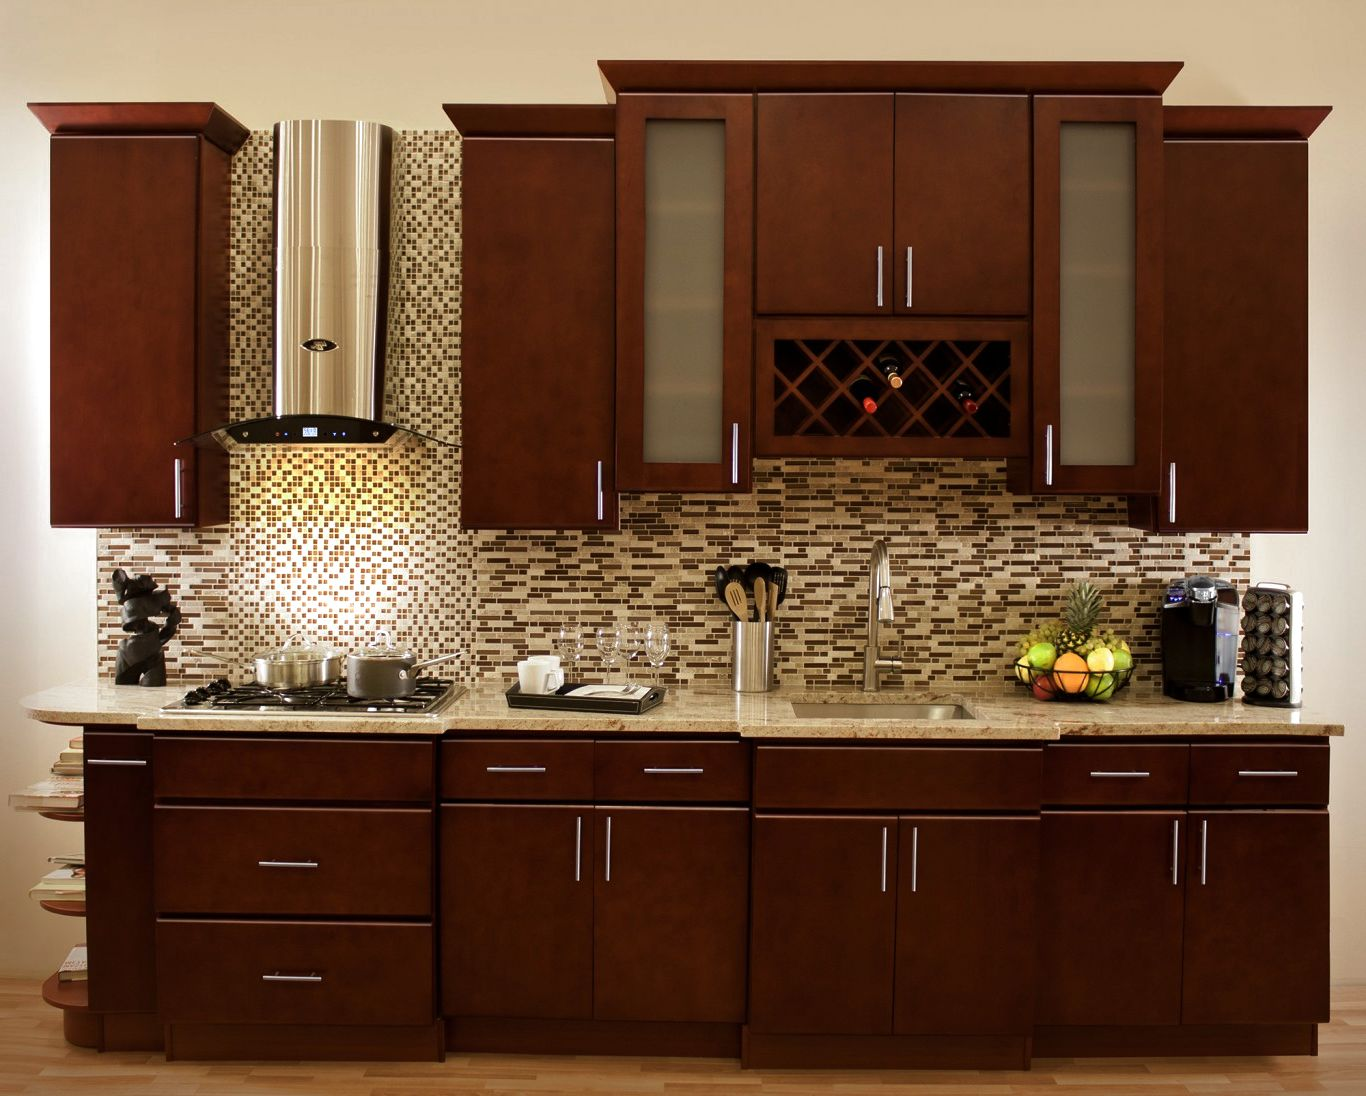 custom kitchen cabinets designs for your lovely kitchen With custom kitchen cabinets designs for your lovely kitchen